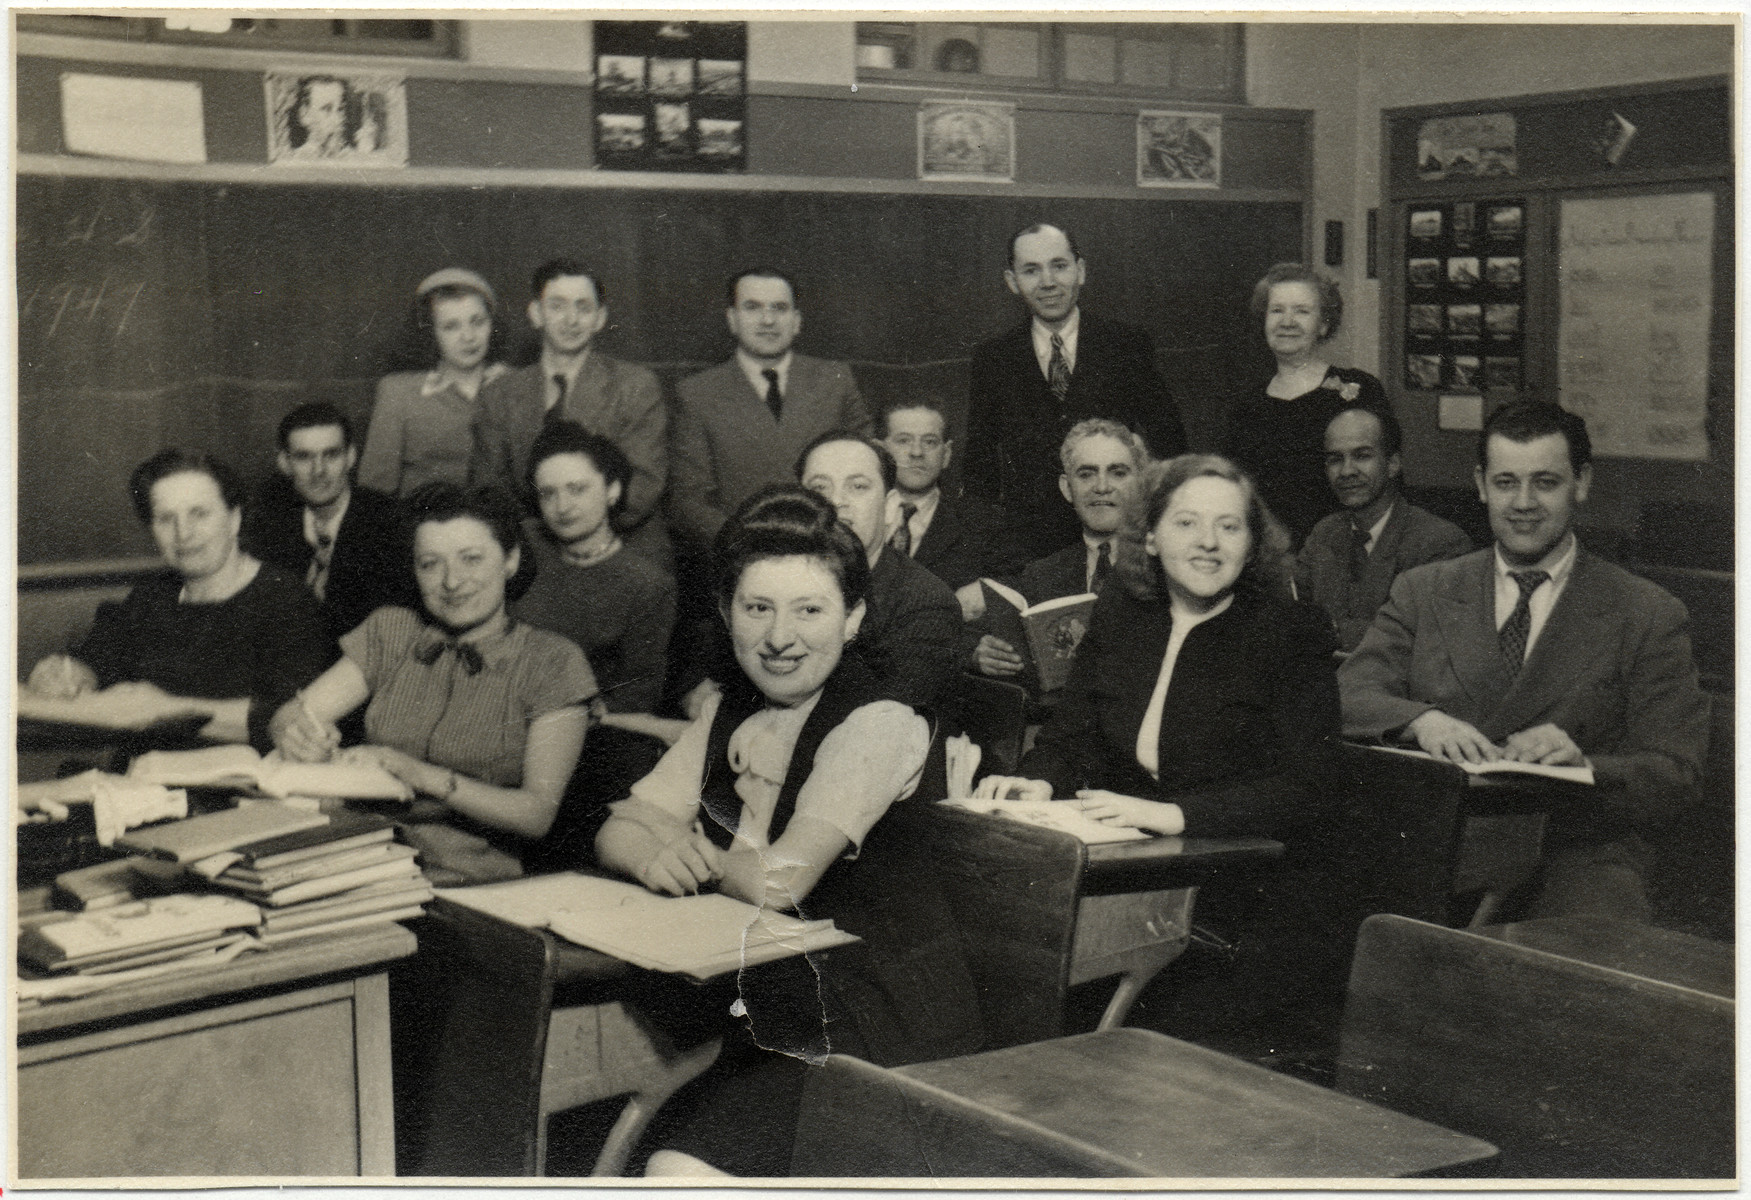 Group portrait of students in an English language class for Deaf immigrants, taught by Alice McVan, a Gallaudet alumna.  Among those pictured are Hilda Wiener Rattner (far left) and  Richard Wiener (back row, third from left).